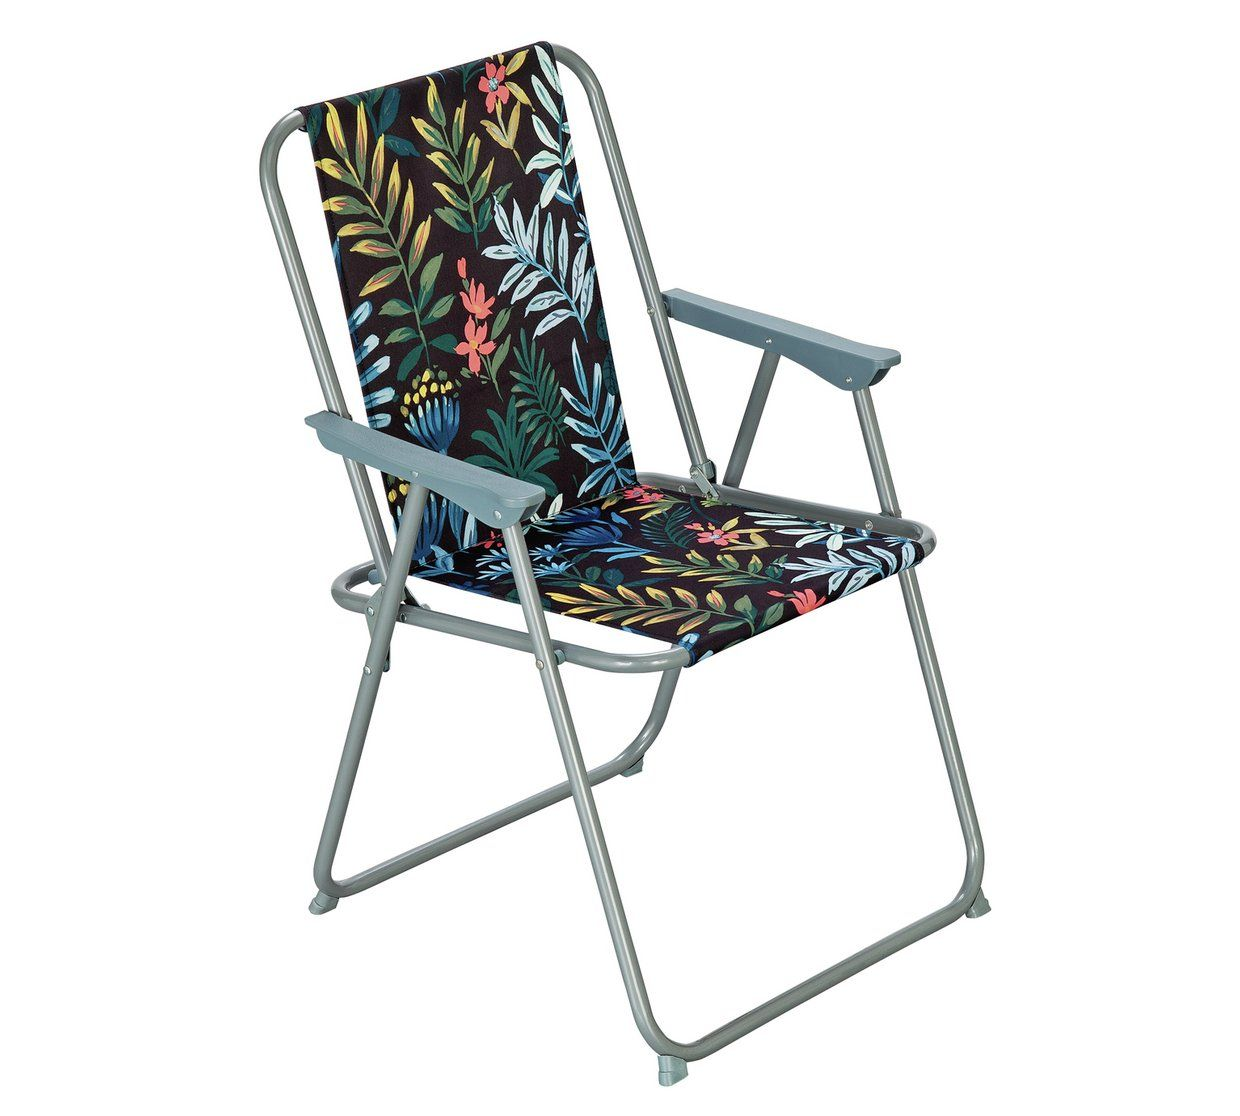 Buy Argos Home Picnic Chair - Rainforest  Garden chairs and sun